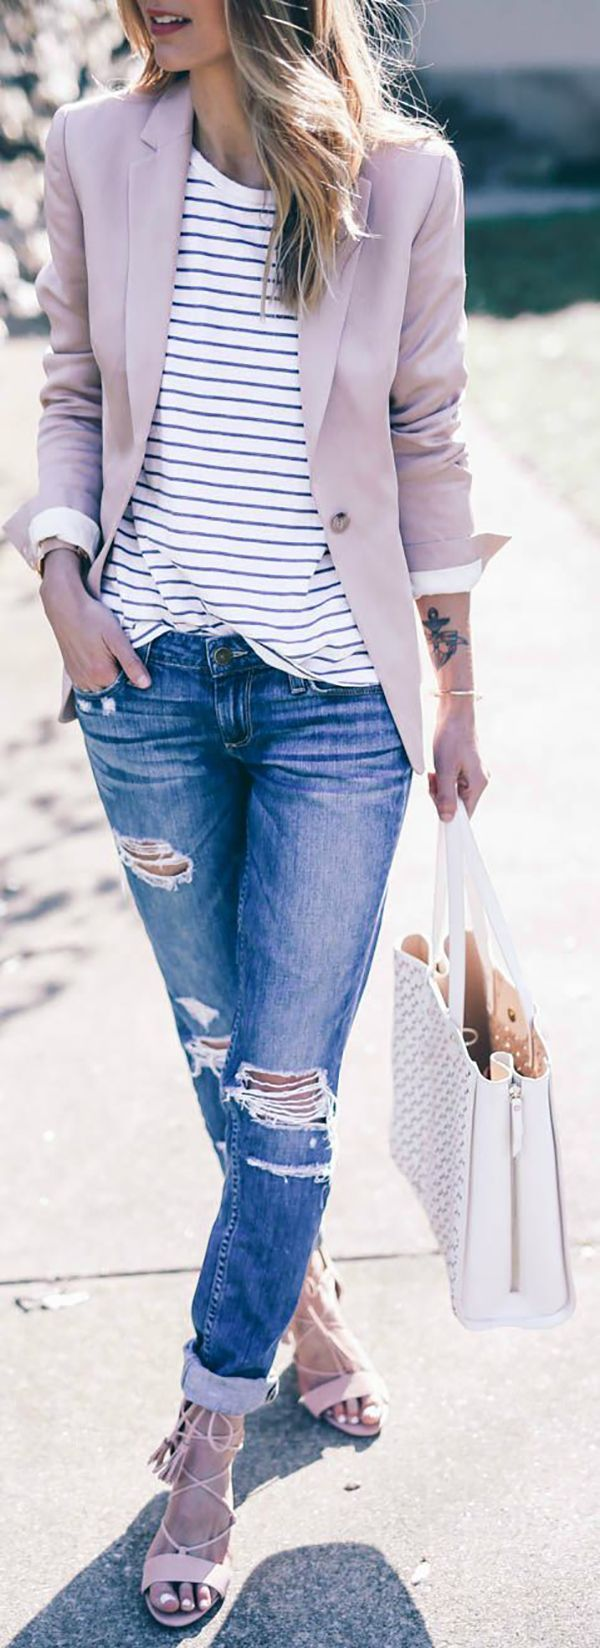 love this look, minus the overly distress jeans. A little distress, ok, but geez.